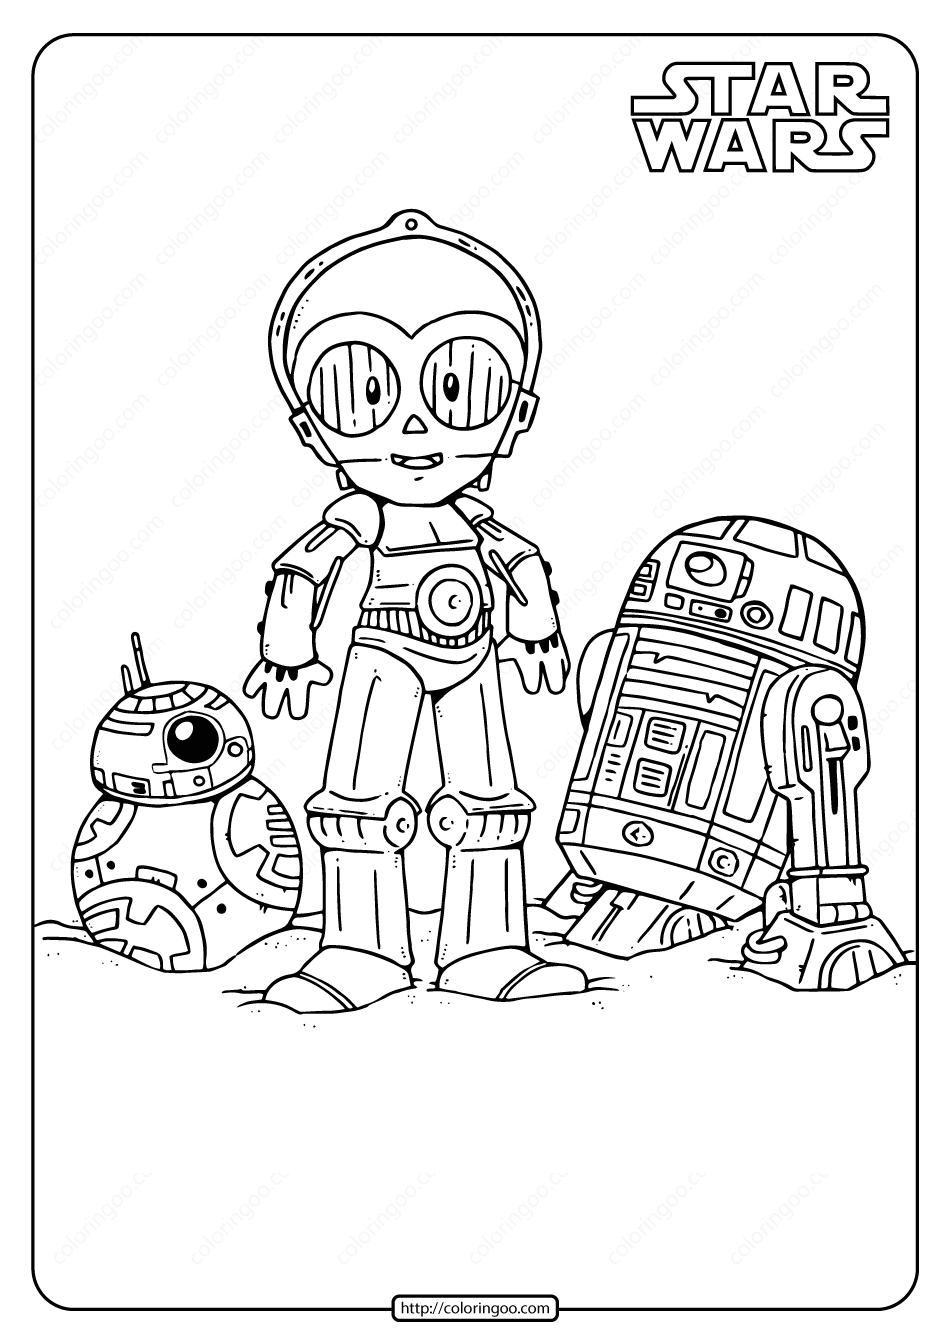 Printable Star Wars Droids Coloring Pages Droids Star Wars Ideas Of Droids Star Wars Sta Star Wars Drawings Star Wars Coloring Book Star Wars Art Drawings